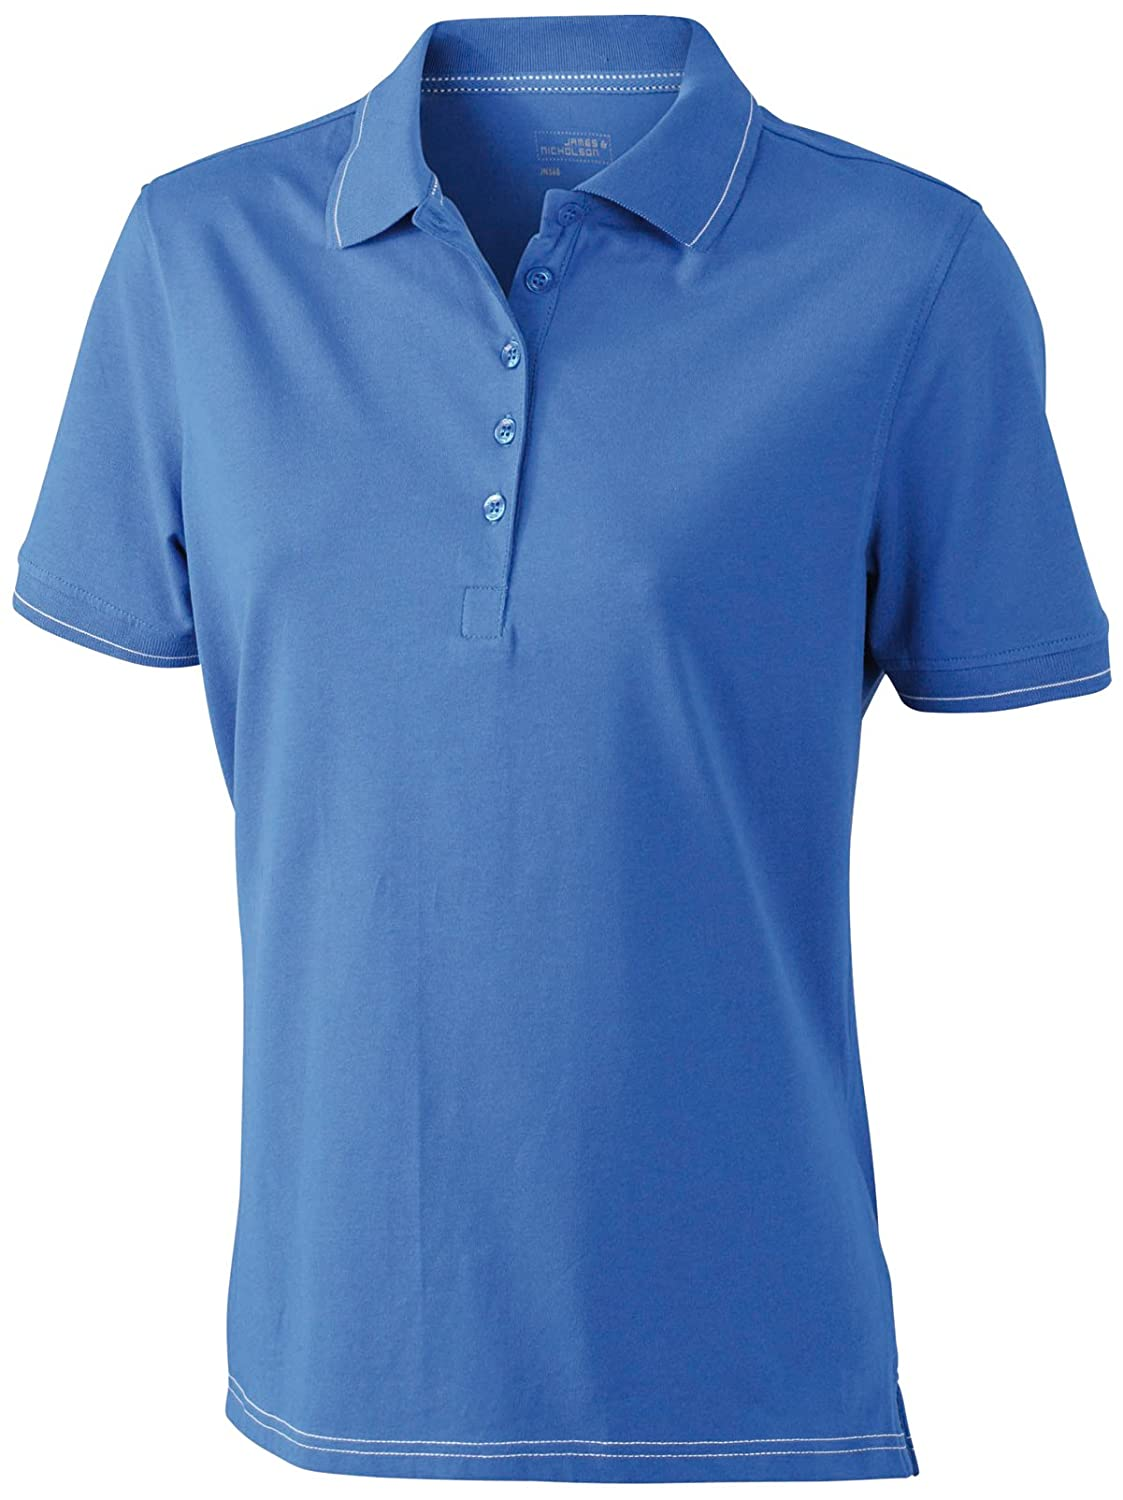 James & Nicholson Funktionspolo Elastic - Polo Mujer, Azul (royal/white), X-Large (Talla del fabricante: X-Large) JN568